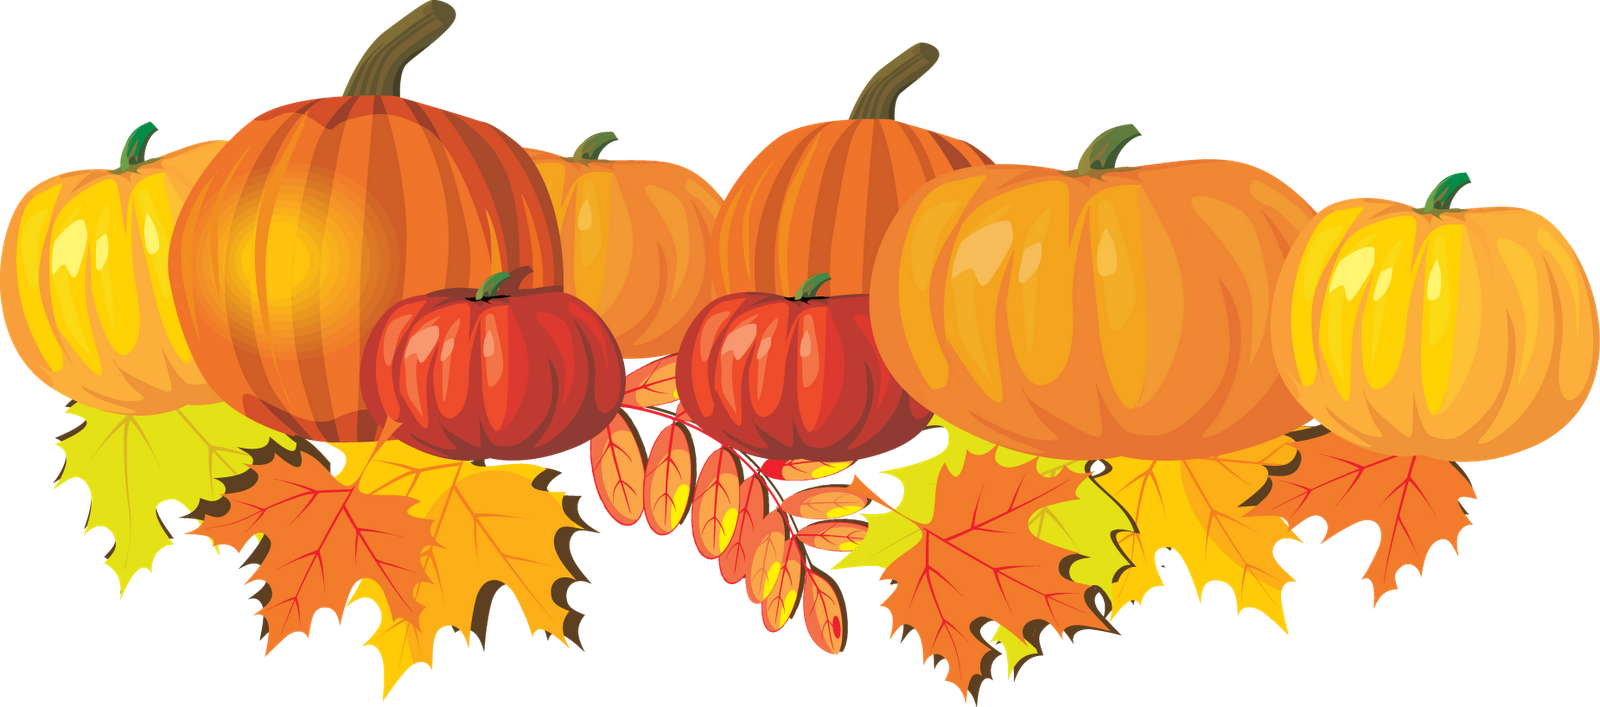 Clip Art Pumpkin Images Clip Art fall pumpkin borders clipart kid 19 pictures free cliparts that you can download to you